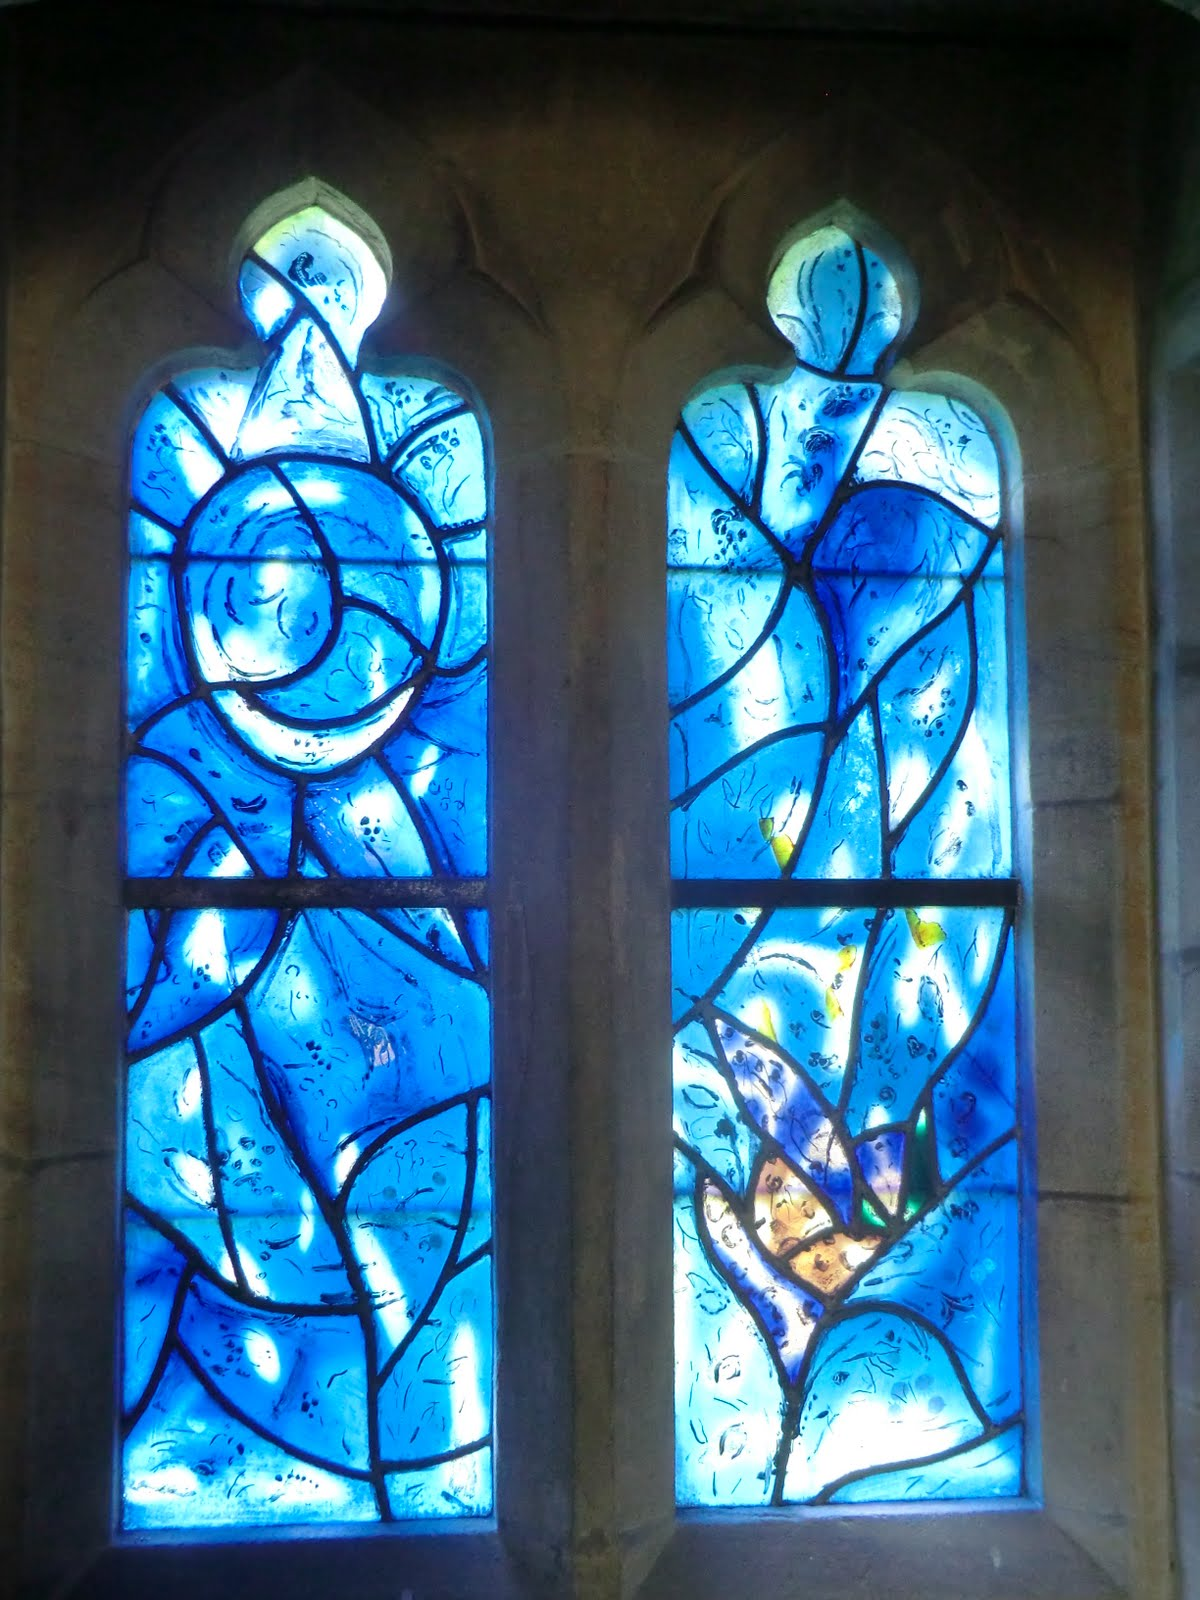 CIMG1560 Chagall window #2, All Saints church